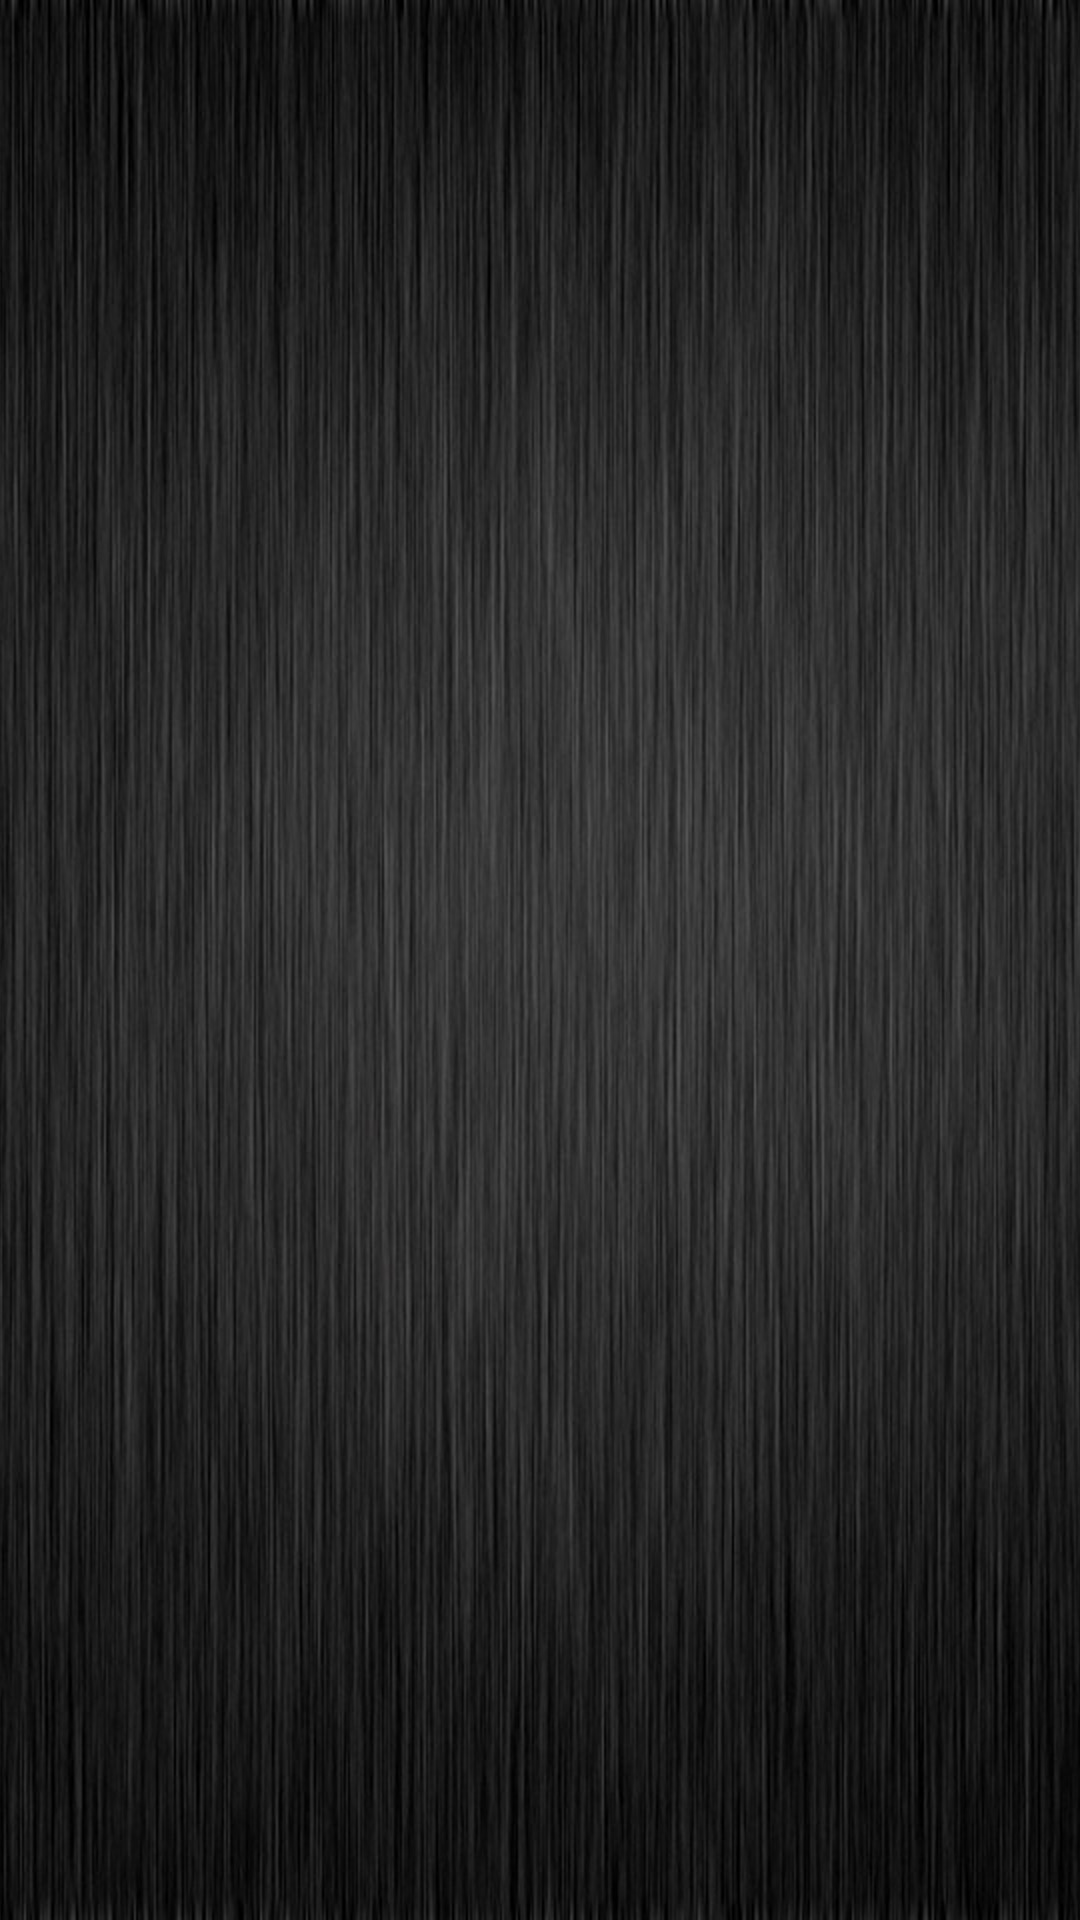 Background Dark metal HD Wallpaper iPhone 6 plus   wallpapersmobile 1080x1920